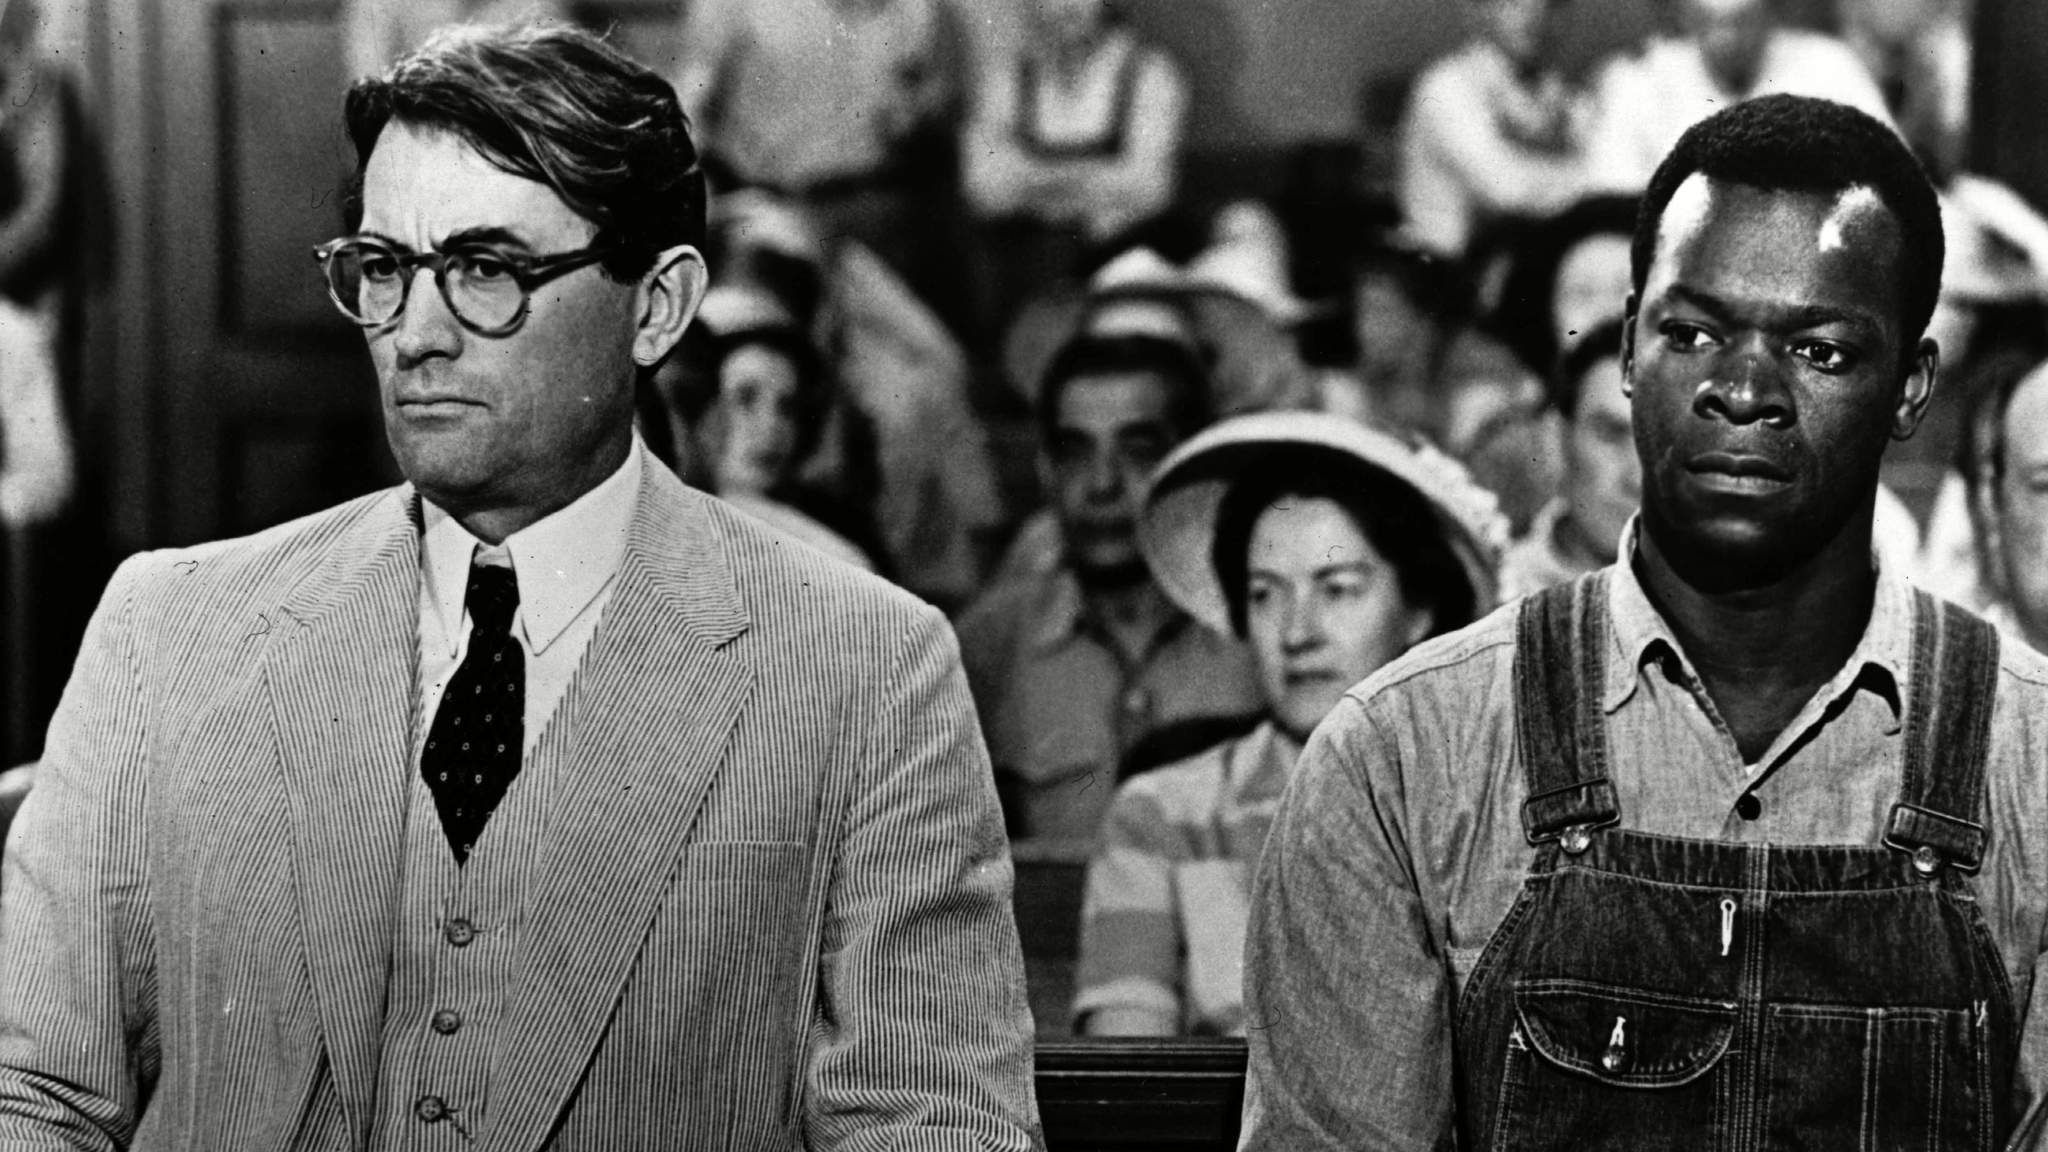 scout and atticus finch to kill Get everything you need to know about atticus finch in to kill a mockingbird analysis, related quotes, timeline.